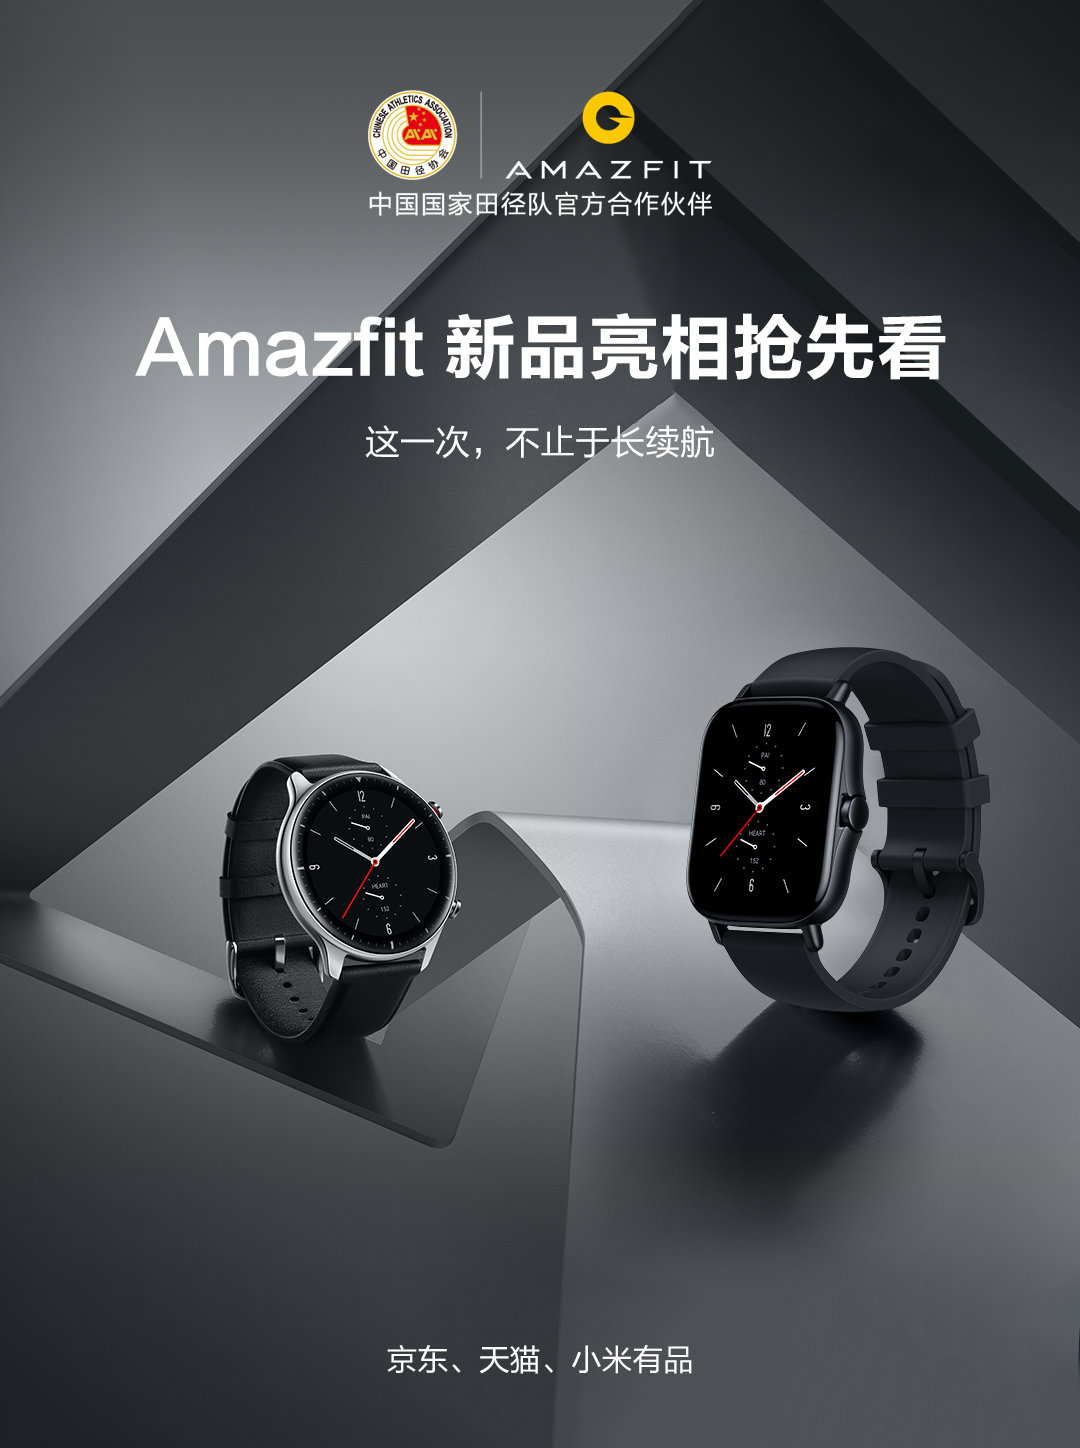 This is the design of the new Amazfit GTS 2 and GTR 2 that will be presented this month